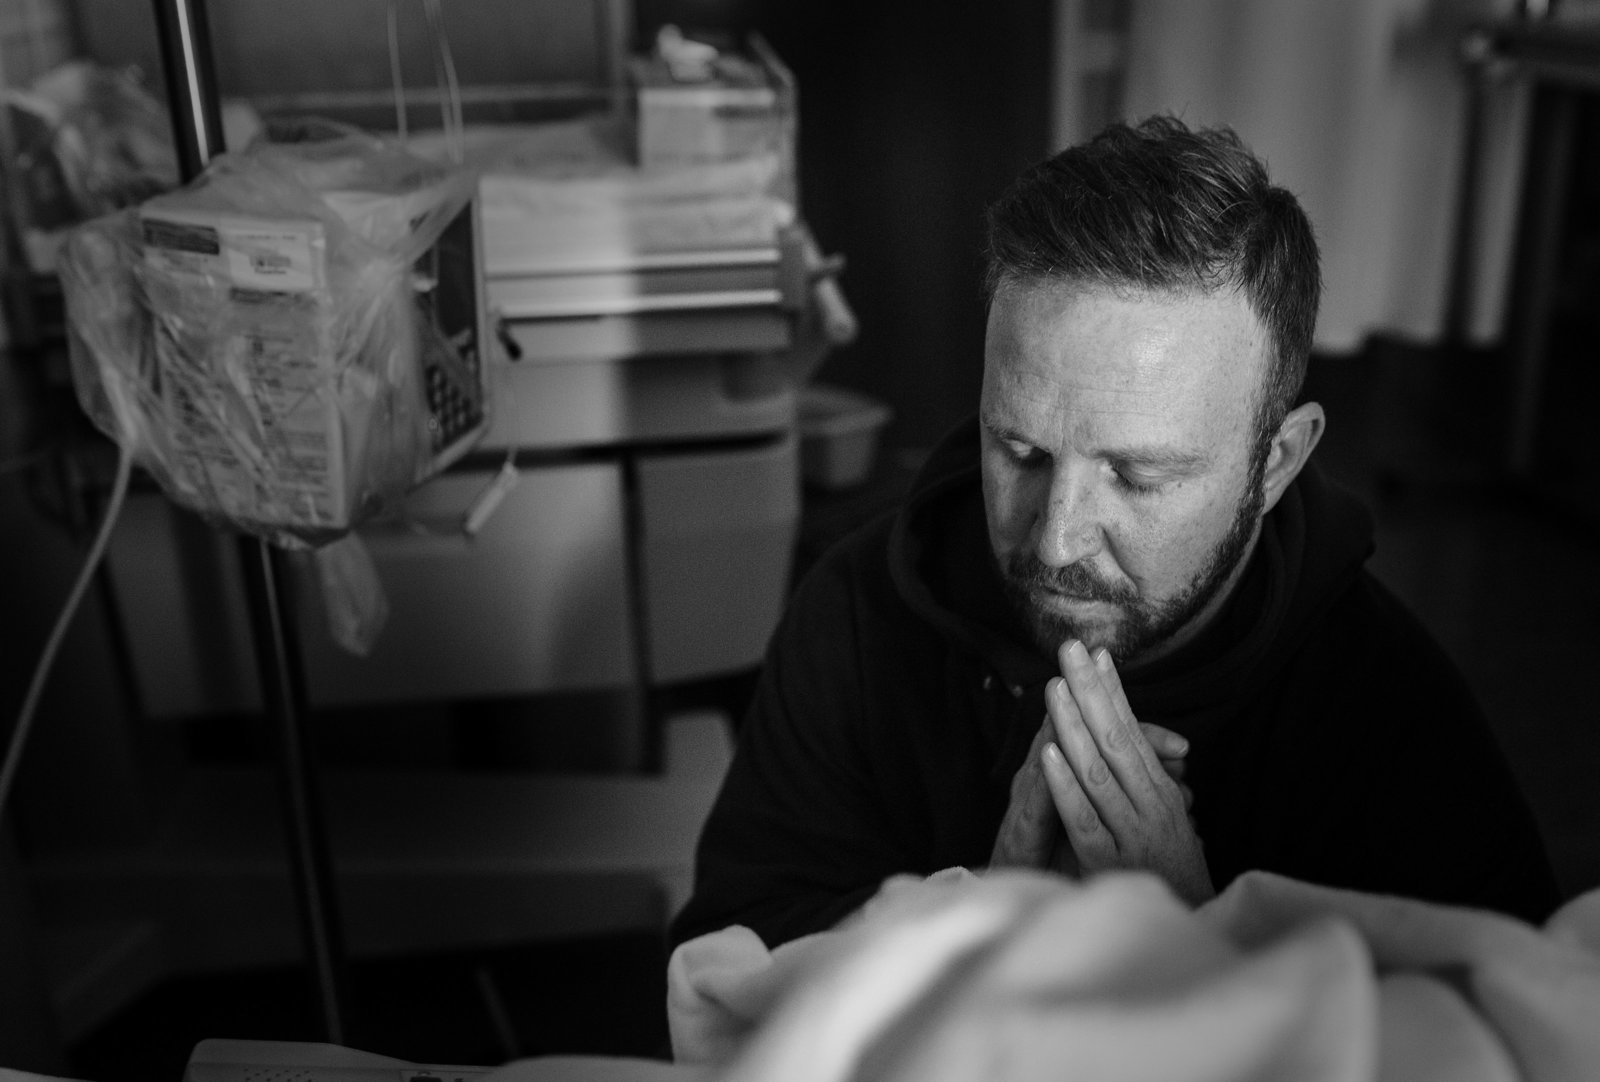 charlotte birth photographer jamie lucido captures a dramatic image of a father praying at his wife's bedside during the birth of their child